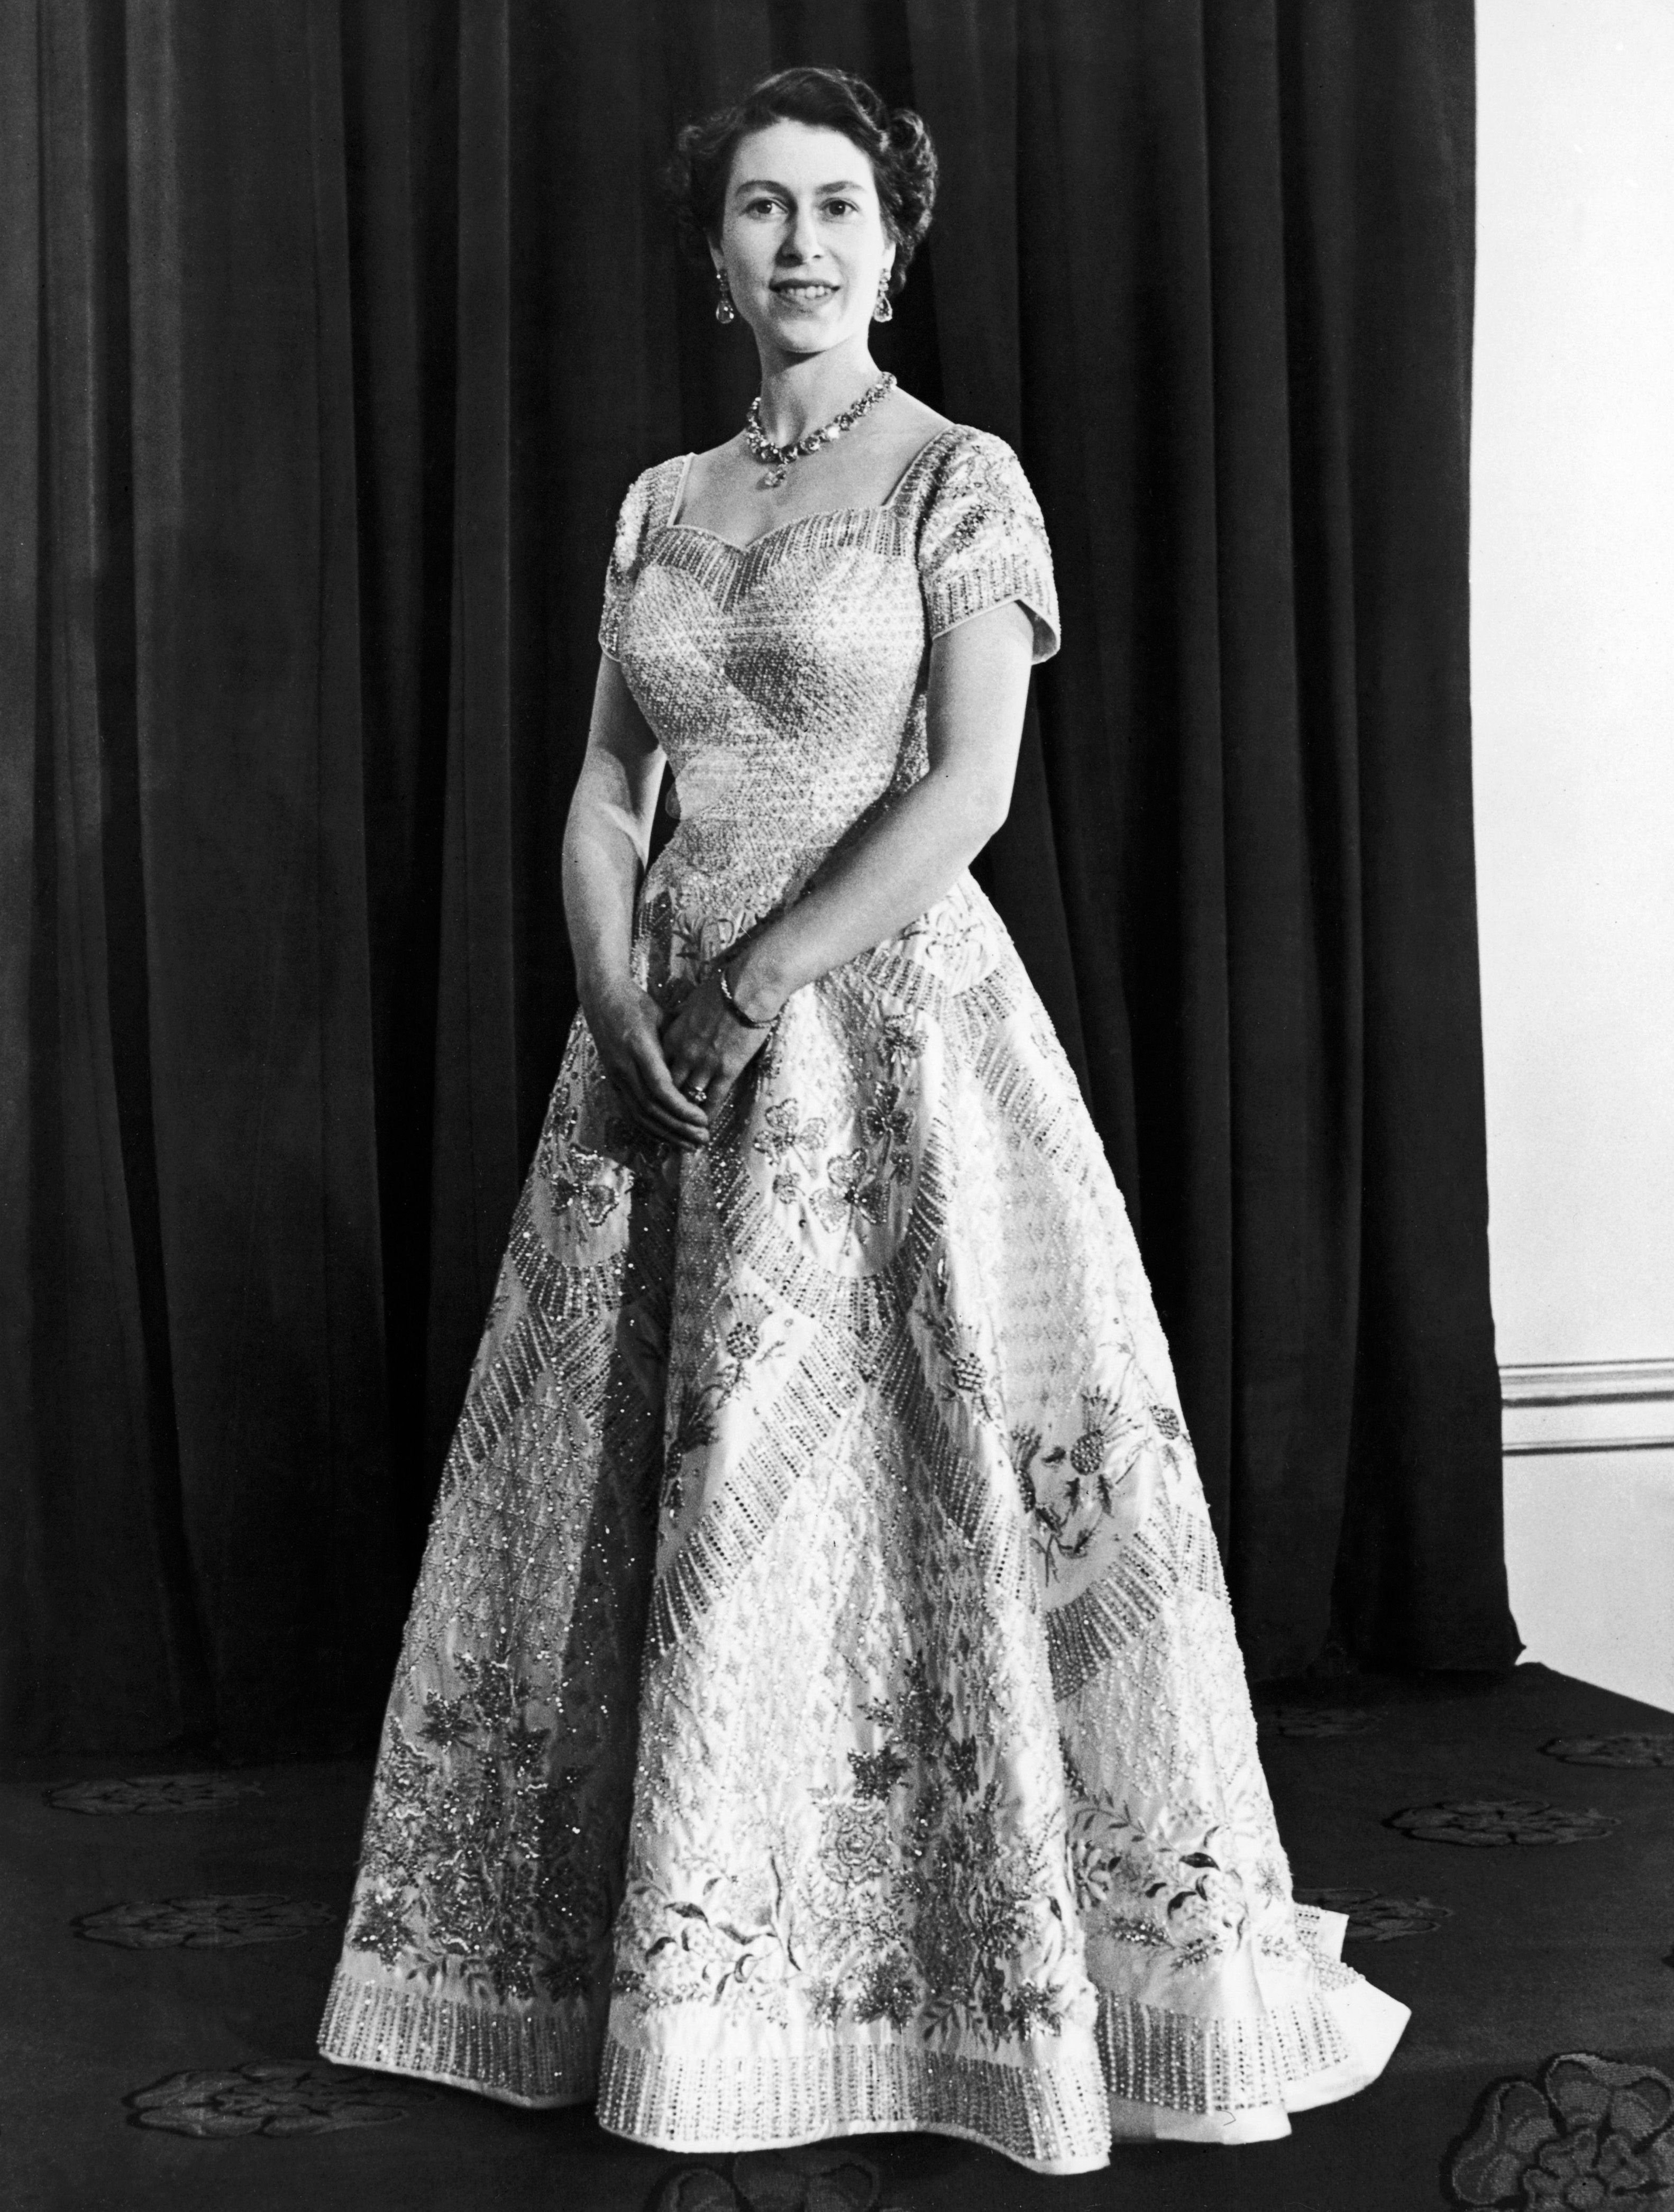 Queen Elizabeth's official portrait for the Coronation in 1953 | Photo: Mirrorpix/Getty Images